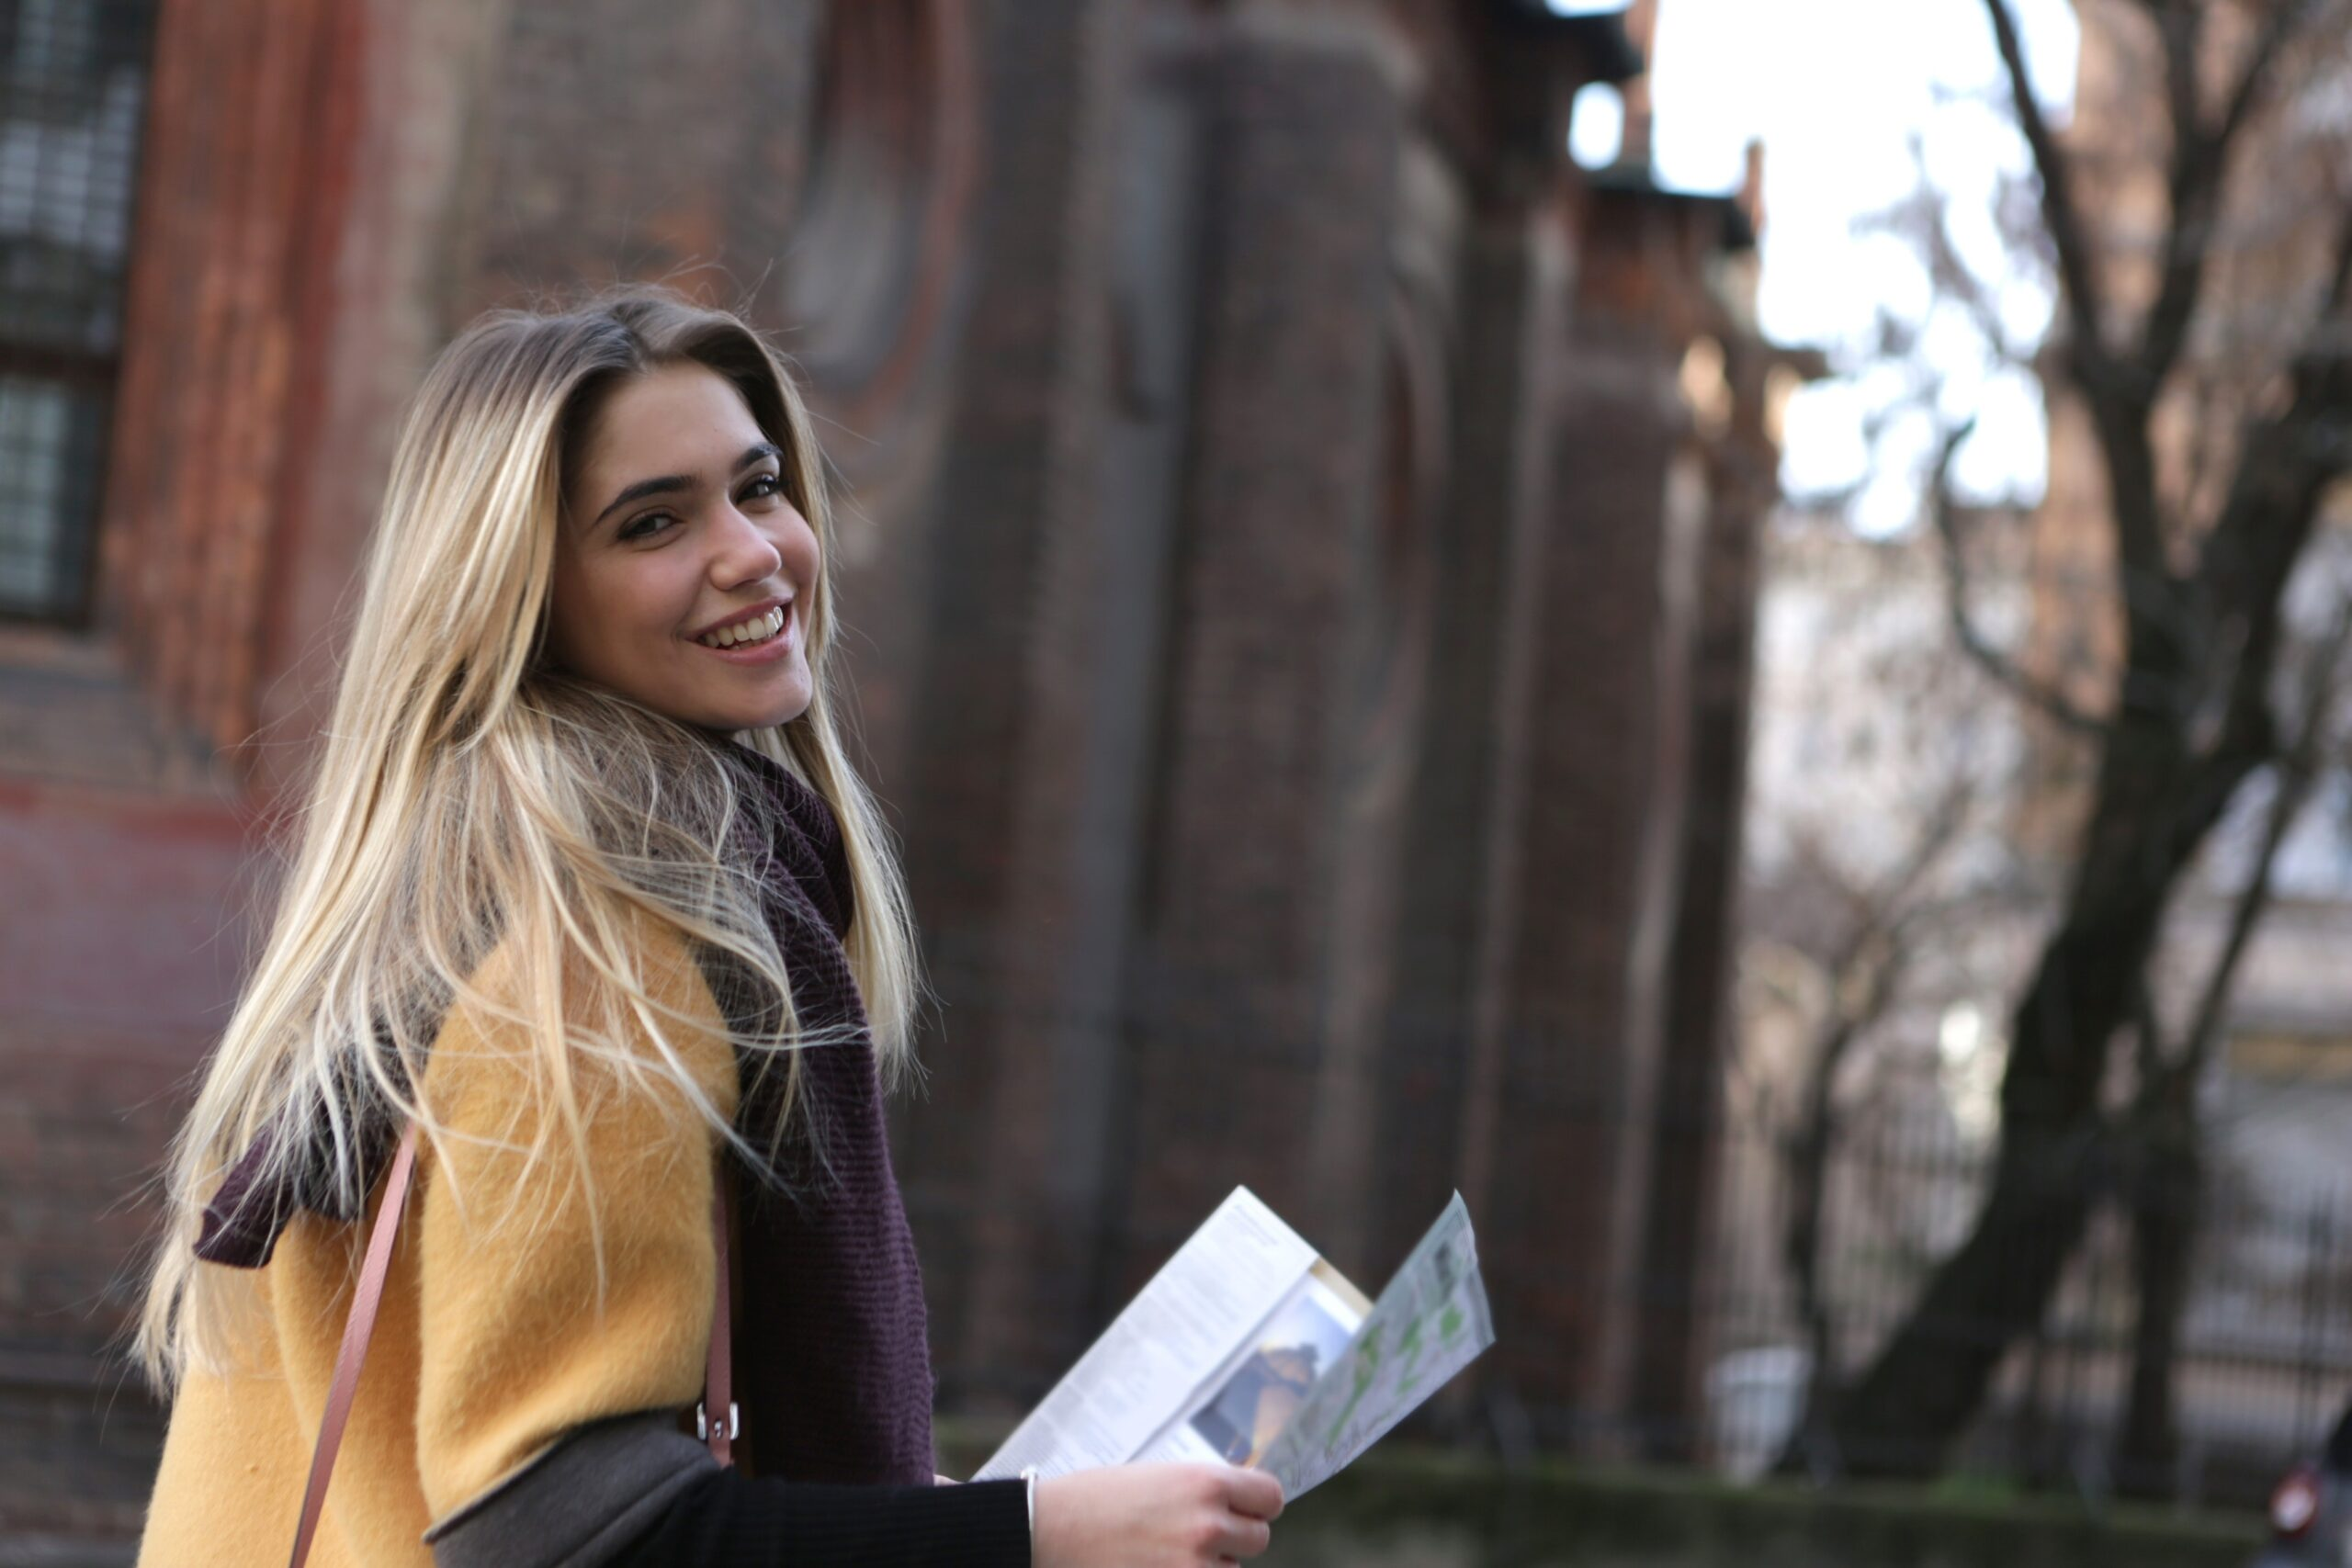 A blonde female holds a map while touring a college campus